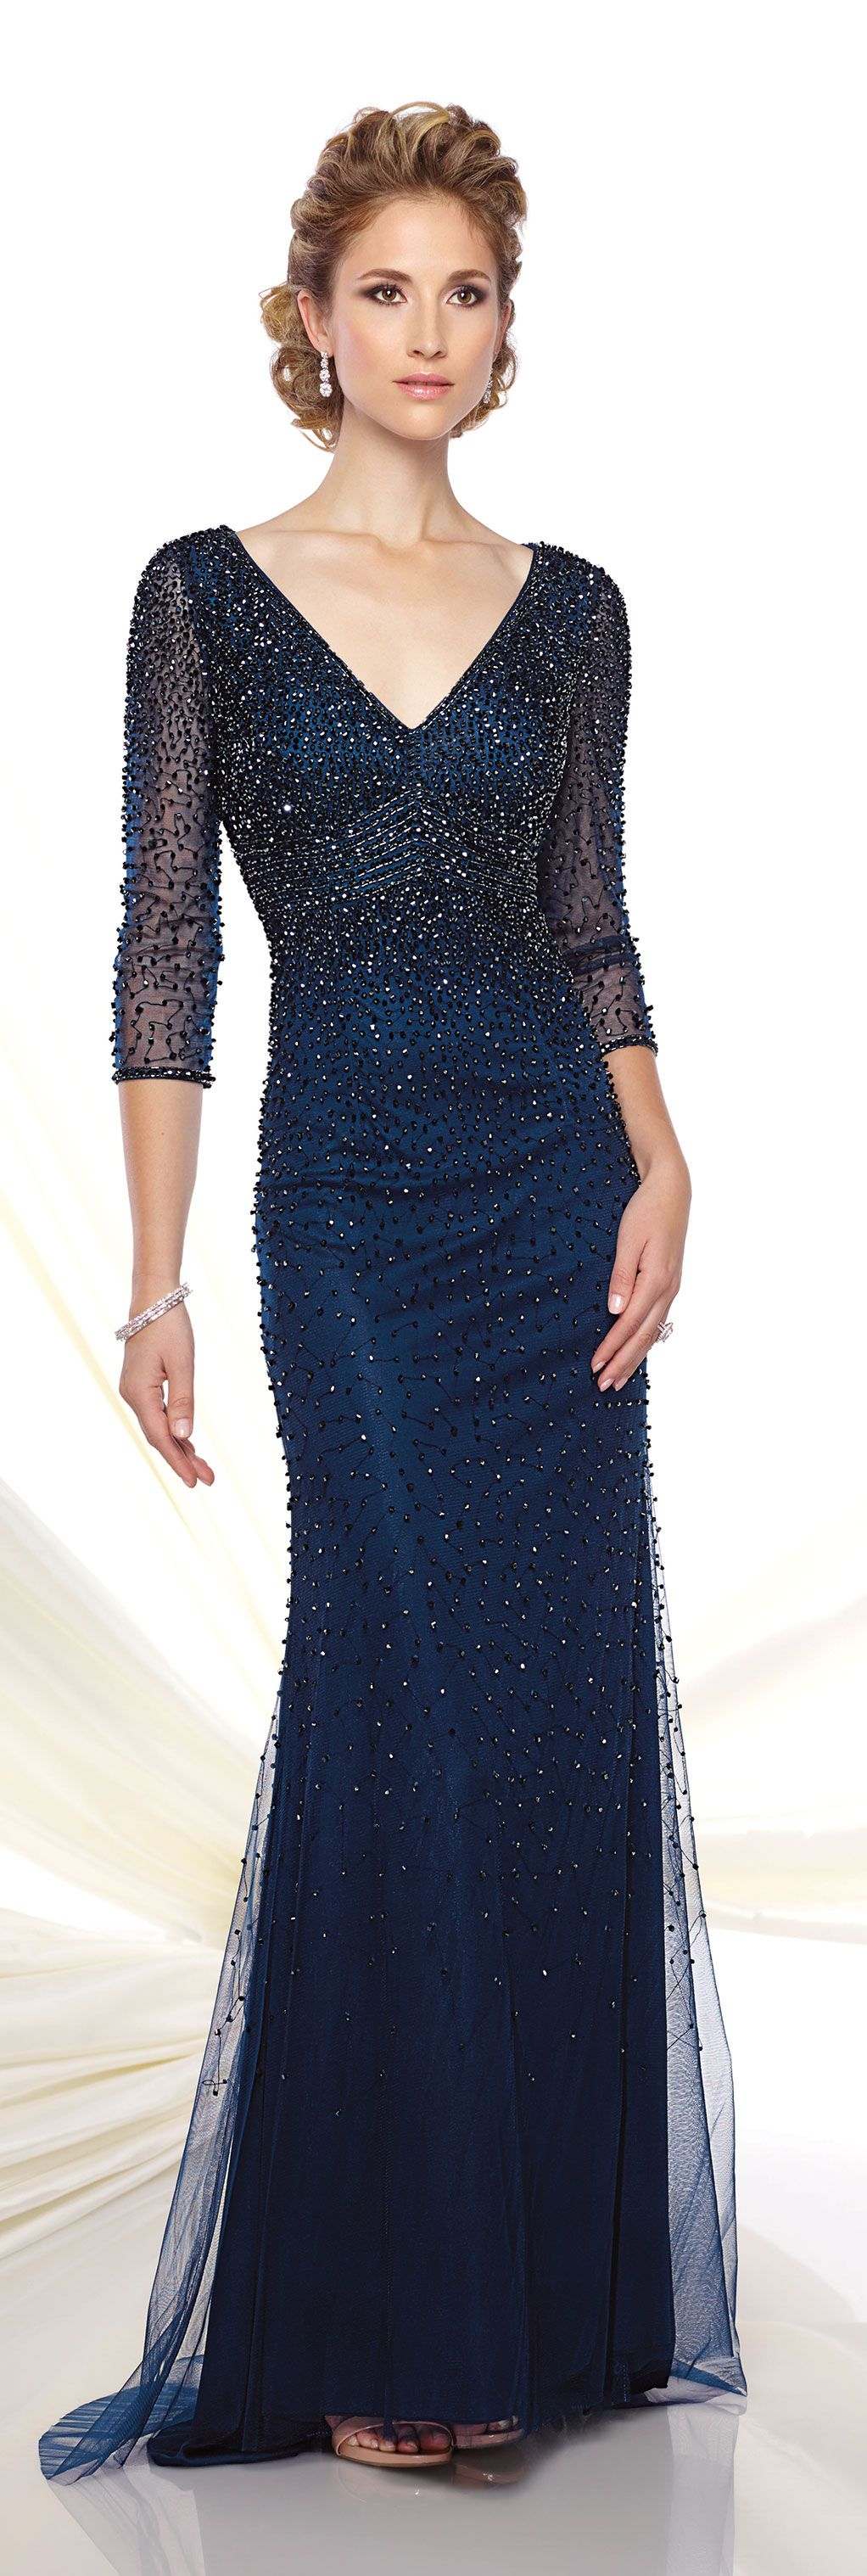 Couture Ivonne D Mother Of The Bride Dresses 2019 For Mon